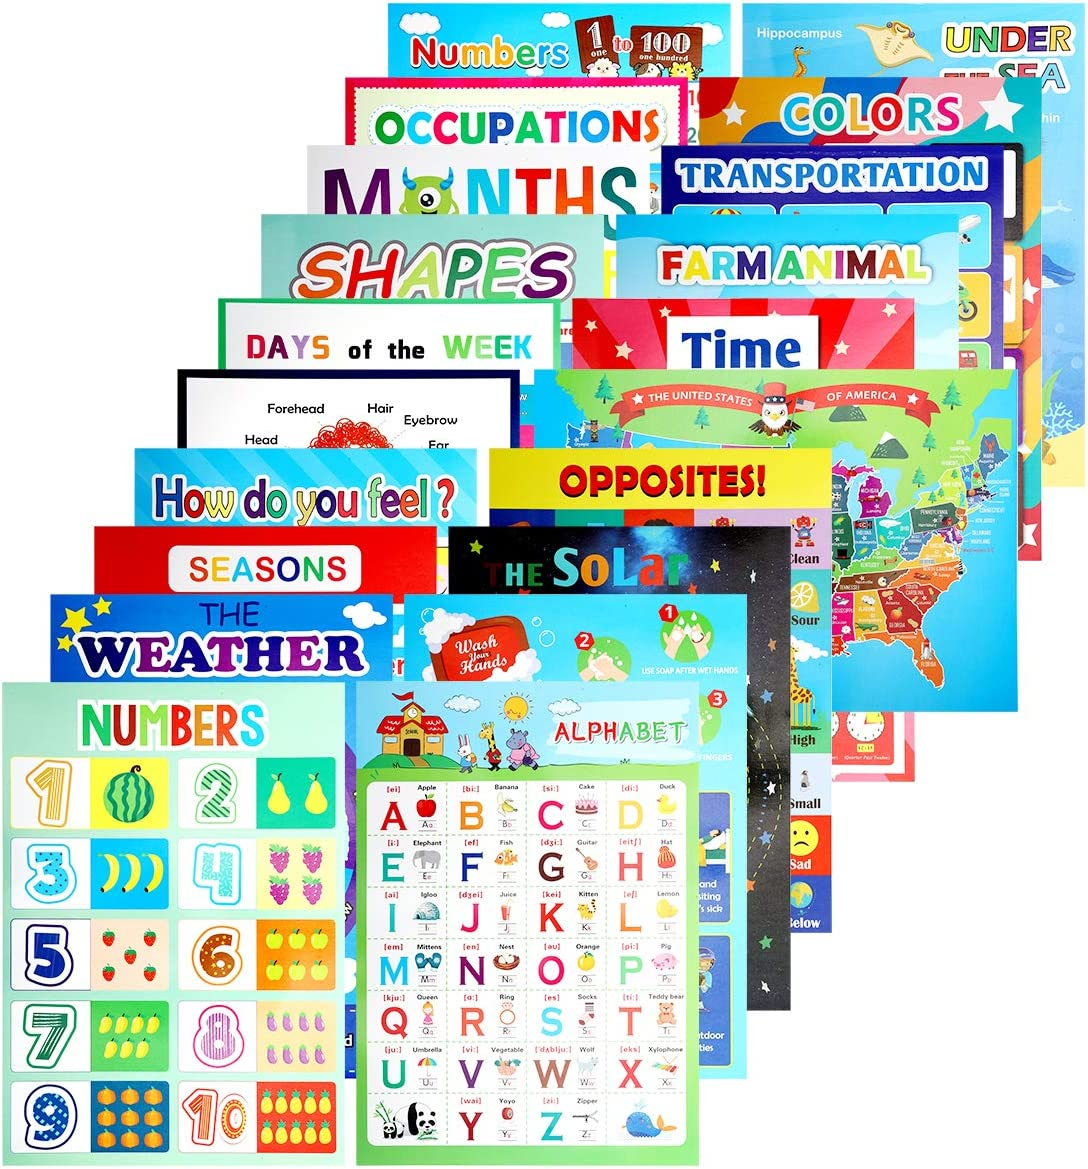 20PCS Educational Preschool Learning Posters for Toddlers Preschooler Pre-K Kindergarten Homeshcool Classroom Kids - Virtual Learning ABC Alphabet Number, Color, Shape, Day, Farm Animals and More